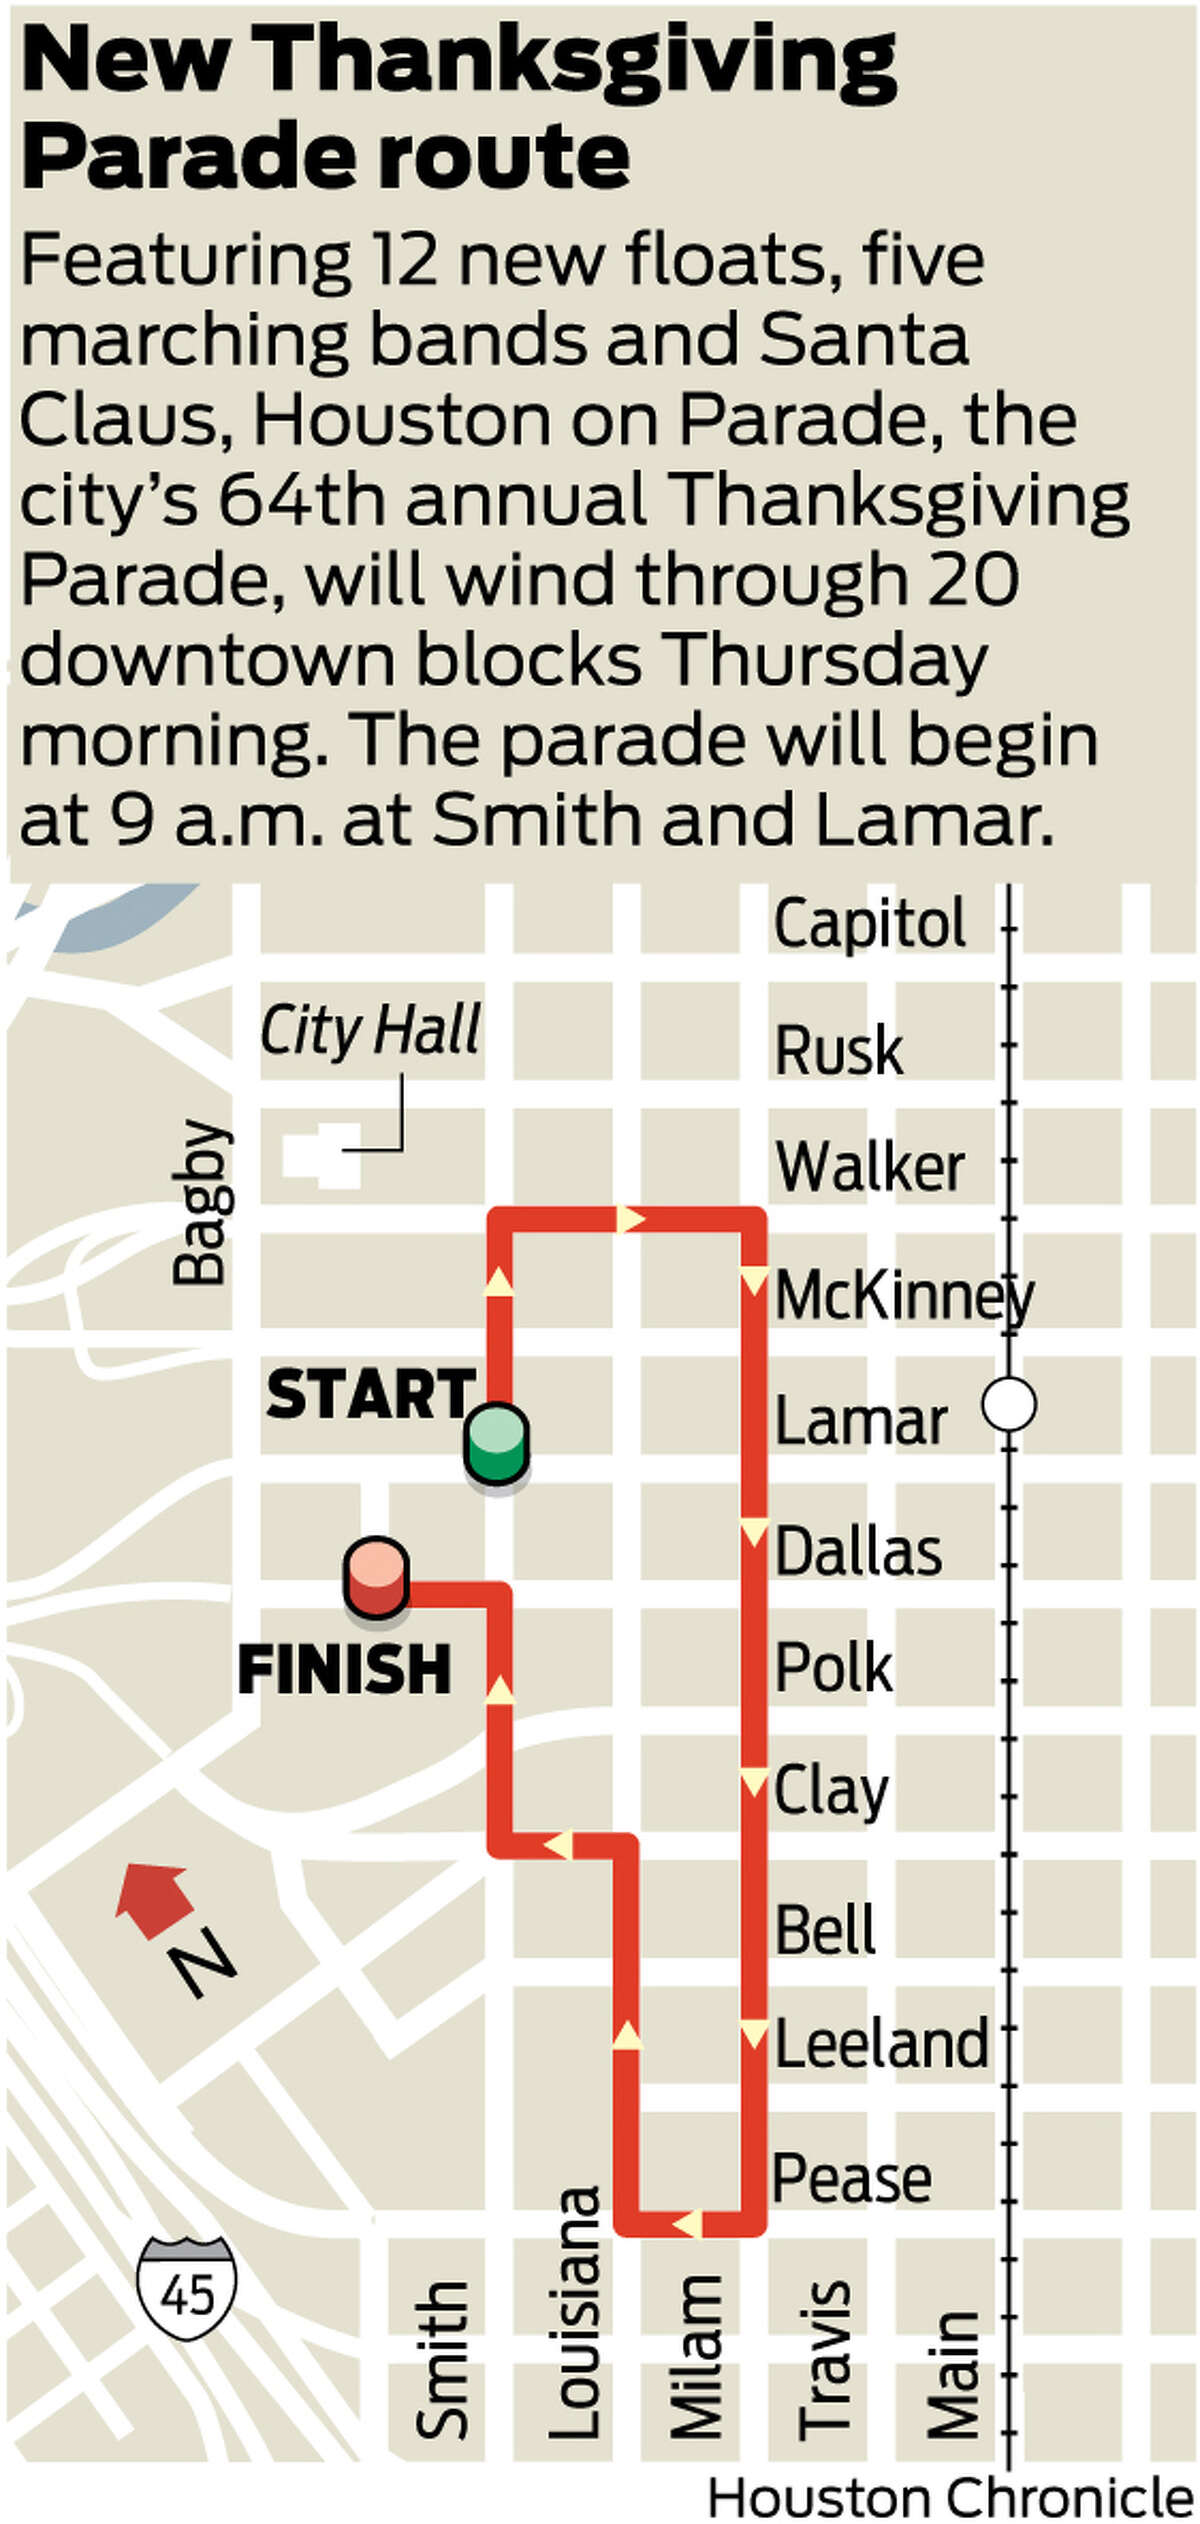 This map shows the route for the 2013 Houston Thanksgiving Parade, which will feature 12 new floats, five new marching bands and Santa Claus. Houston on Parade, the city'€™s 64th annual Thanksgiving Parade, will wind through 20 downtown blocks Thursday morning. The parade will begin at 9 a.m. at Smith and Lamar.